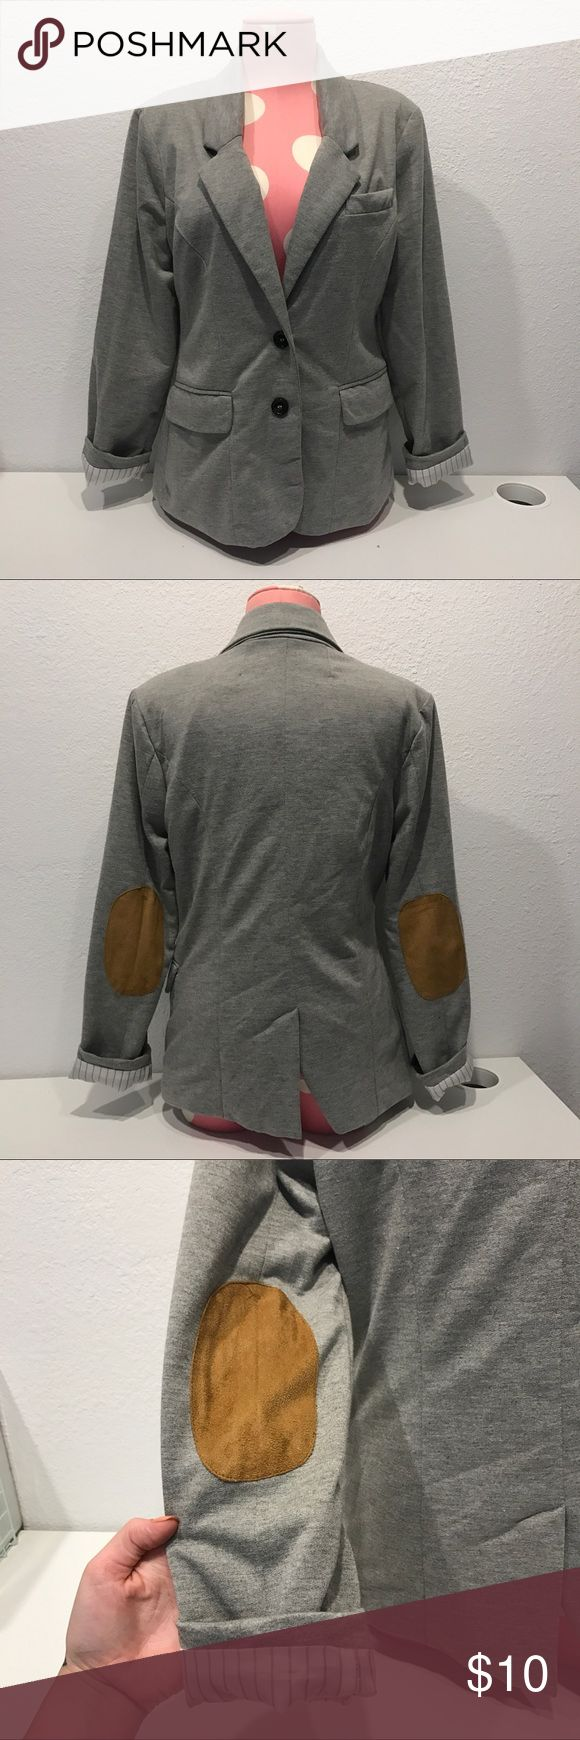 Cute blazer Very cute grey blazer with brown elbow patches. In good condition aside from a small bit unraveling on the inside Seam. Doesn't effect it, just wanted to disclose. Jackets & Coats Blazers